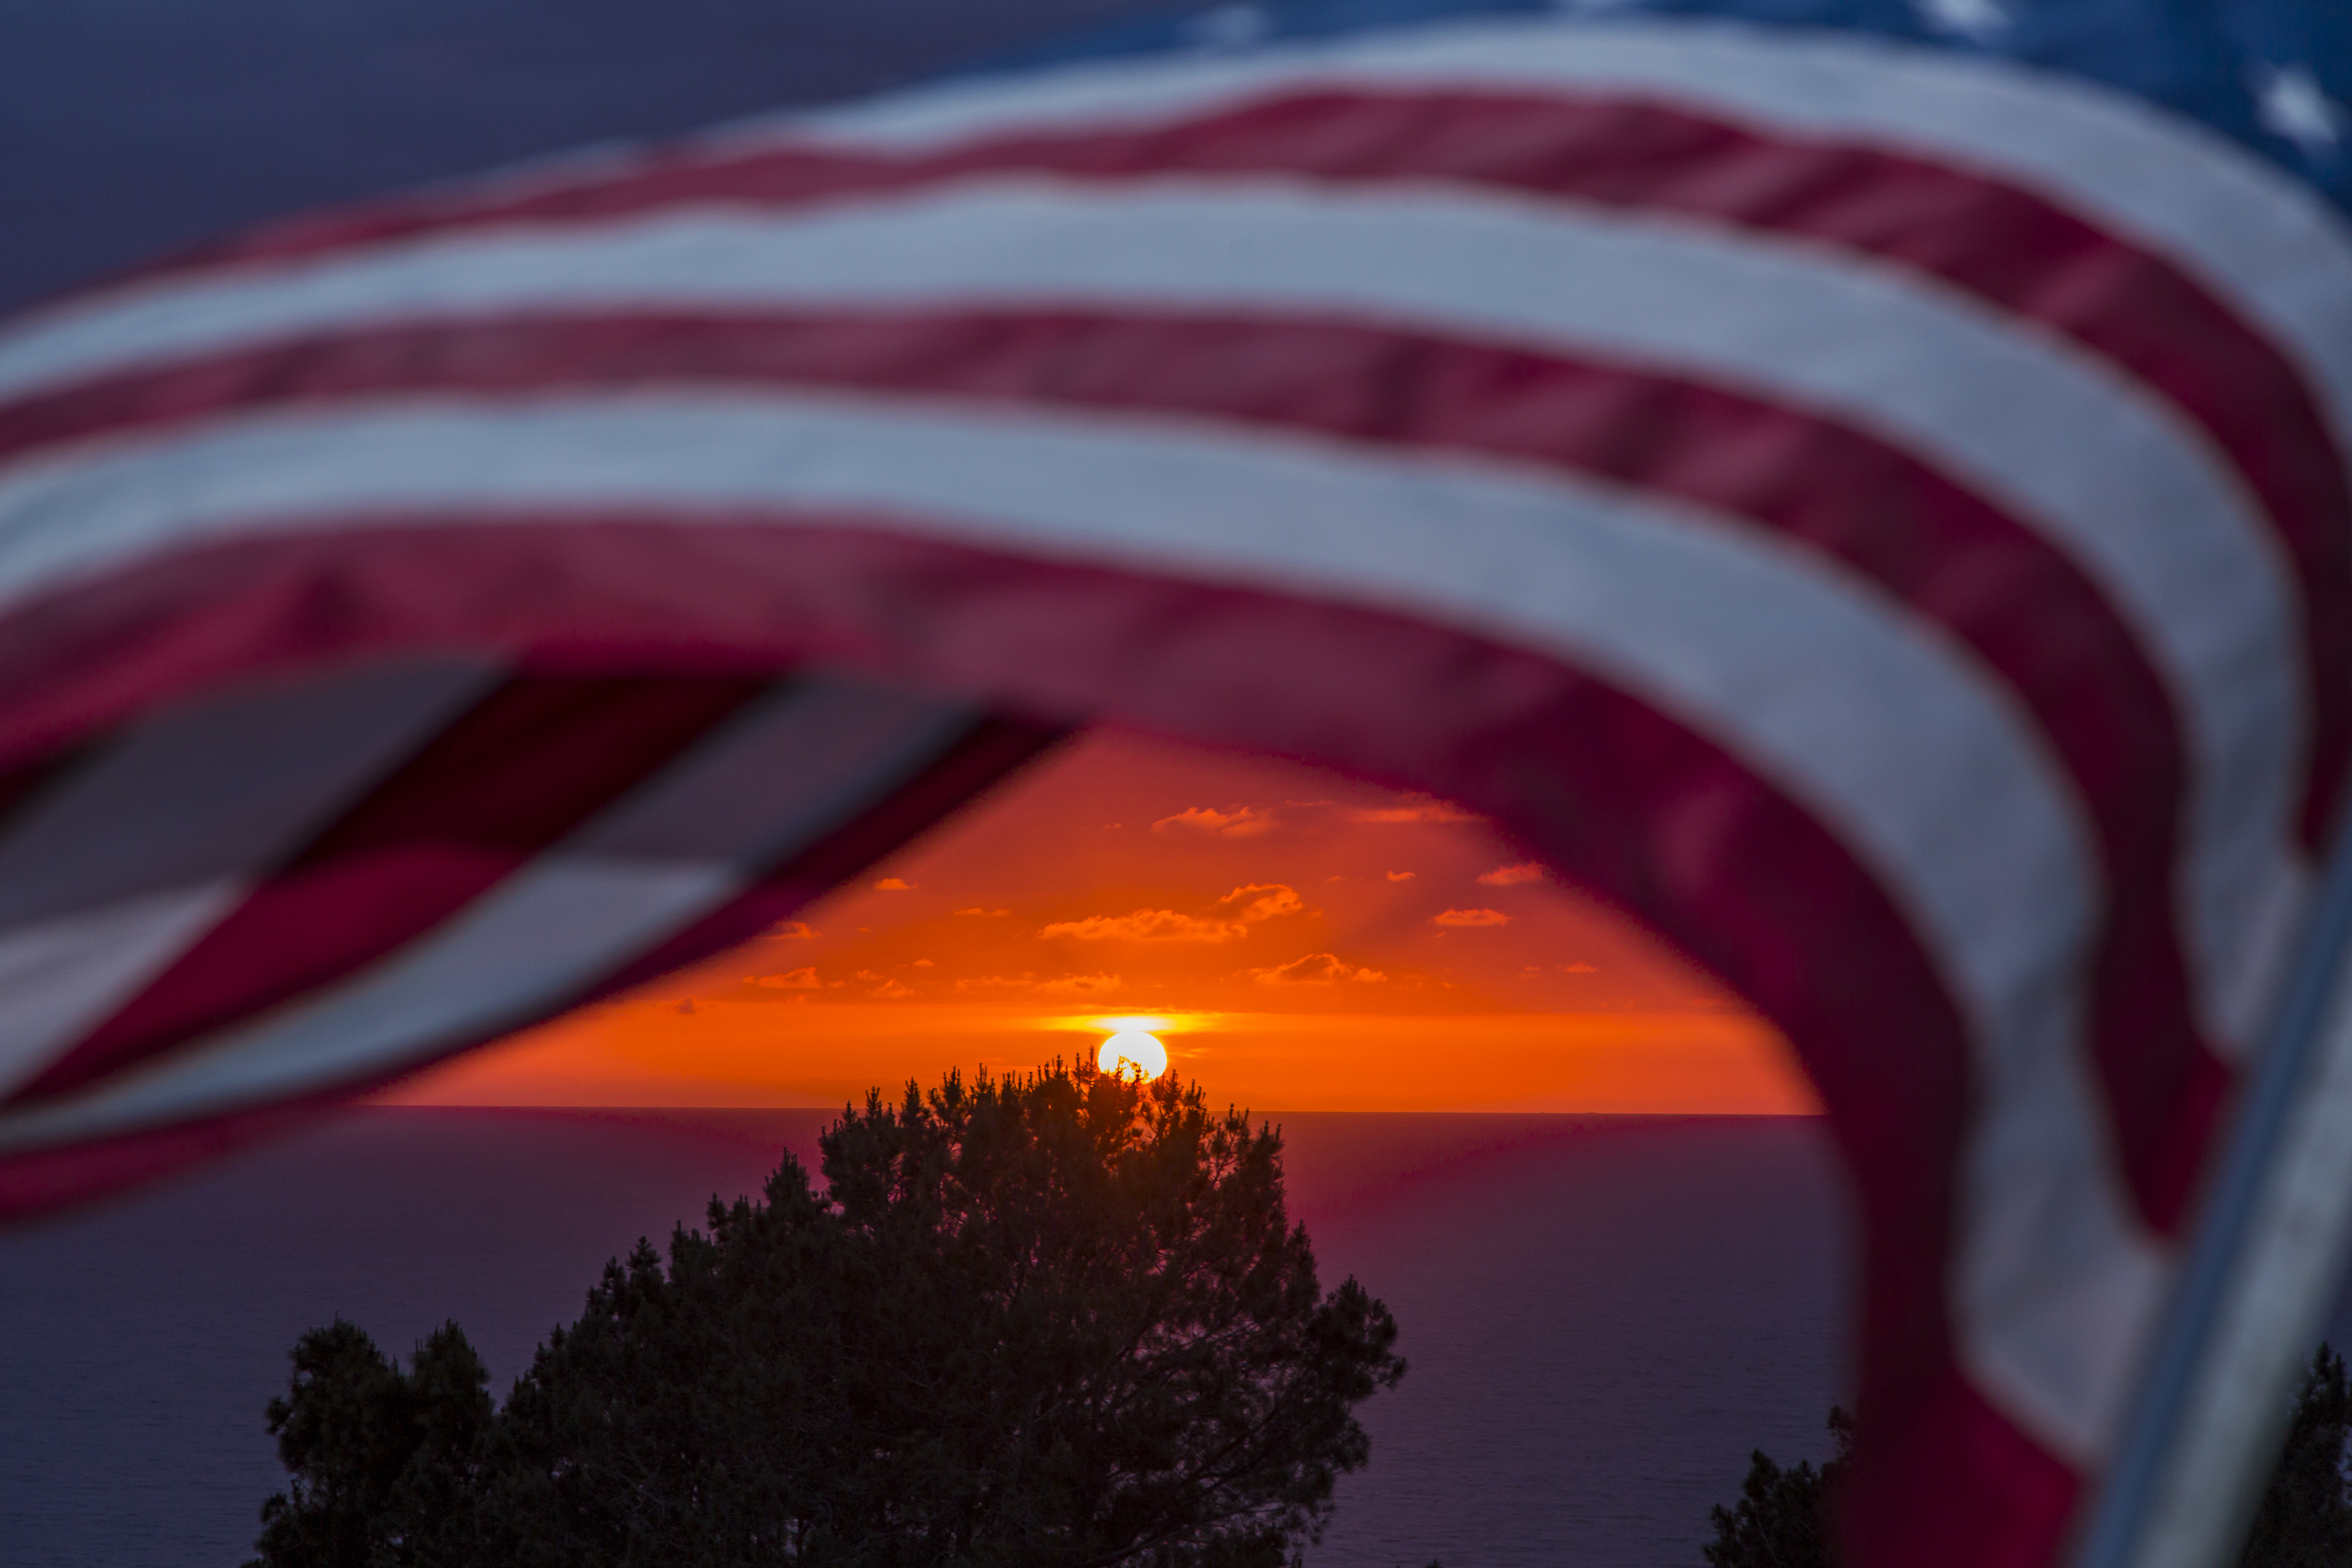 A proudly patriotic sunset